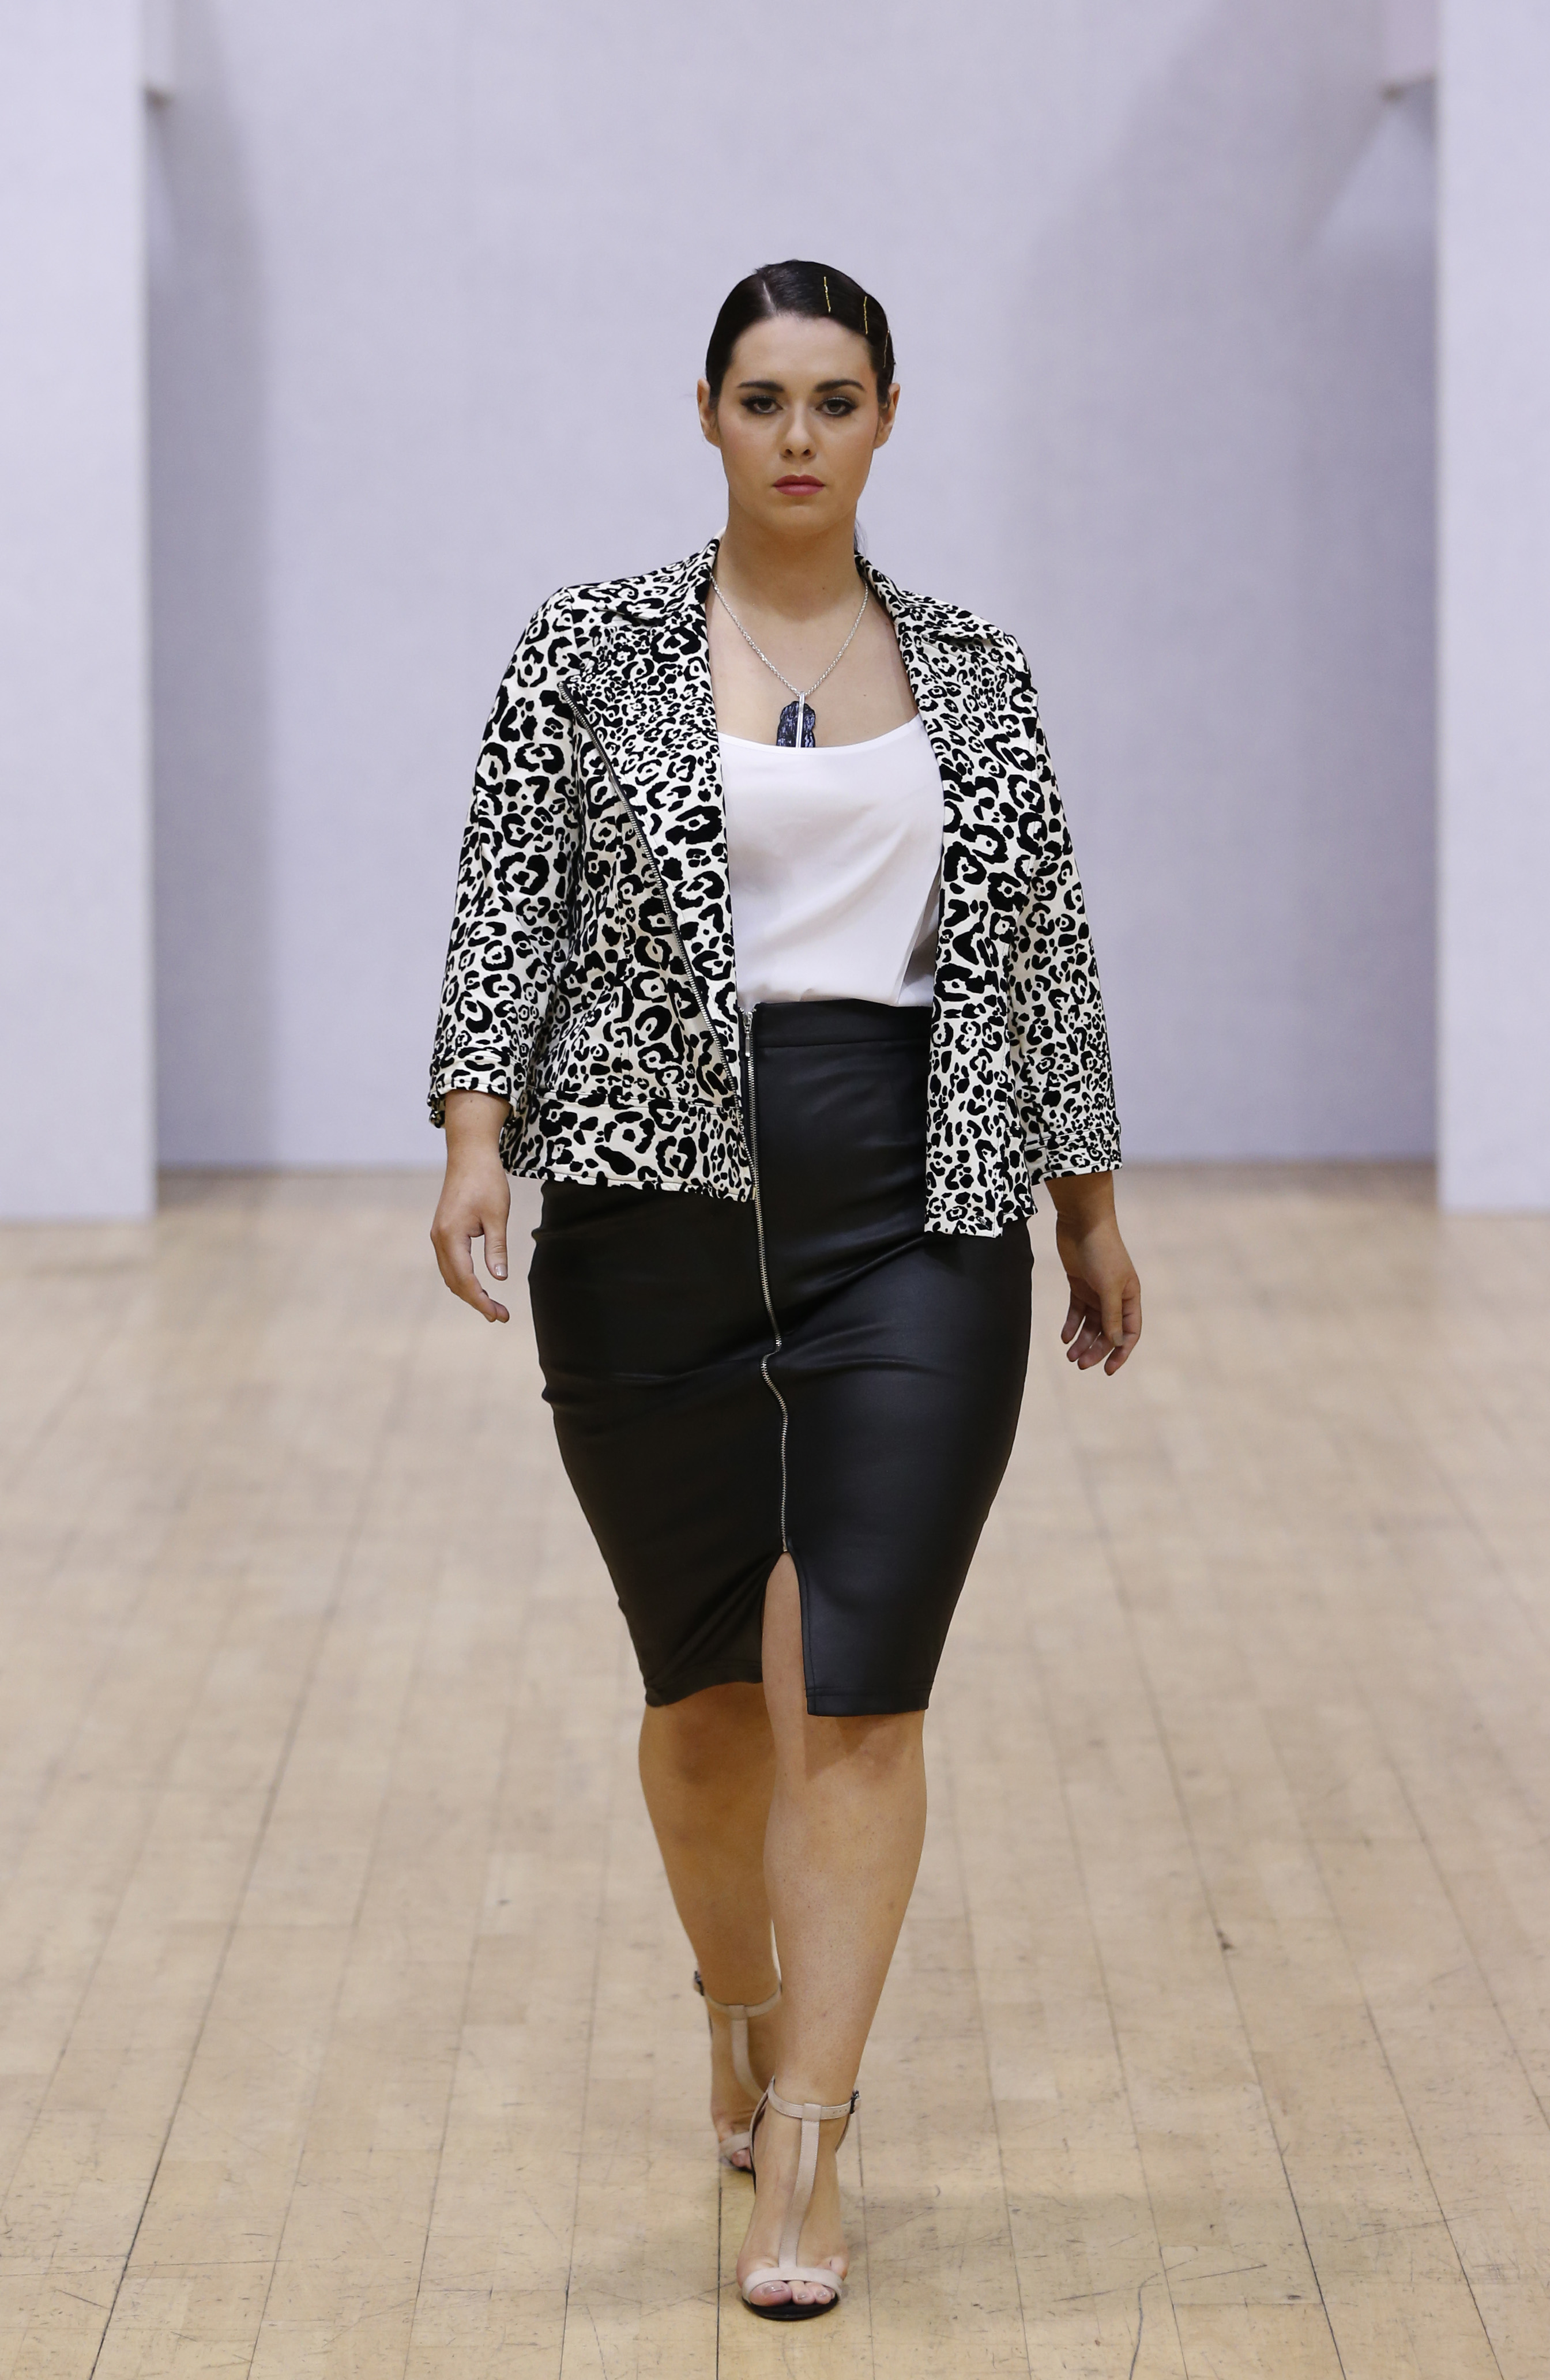 A model walks the runway at the British Plus-size Fashion Weekend show during London Fashion Week last winter.